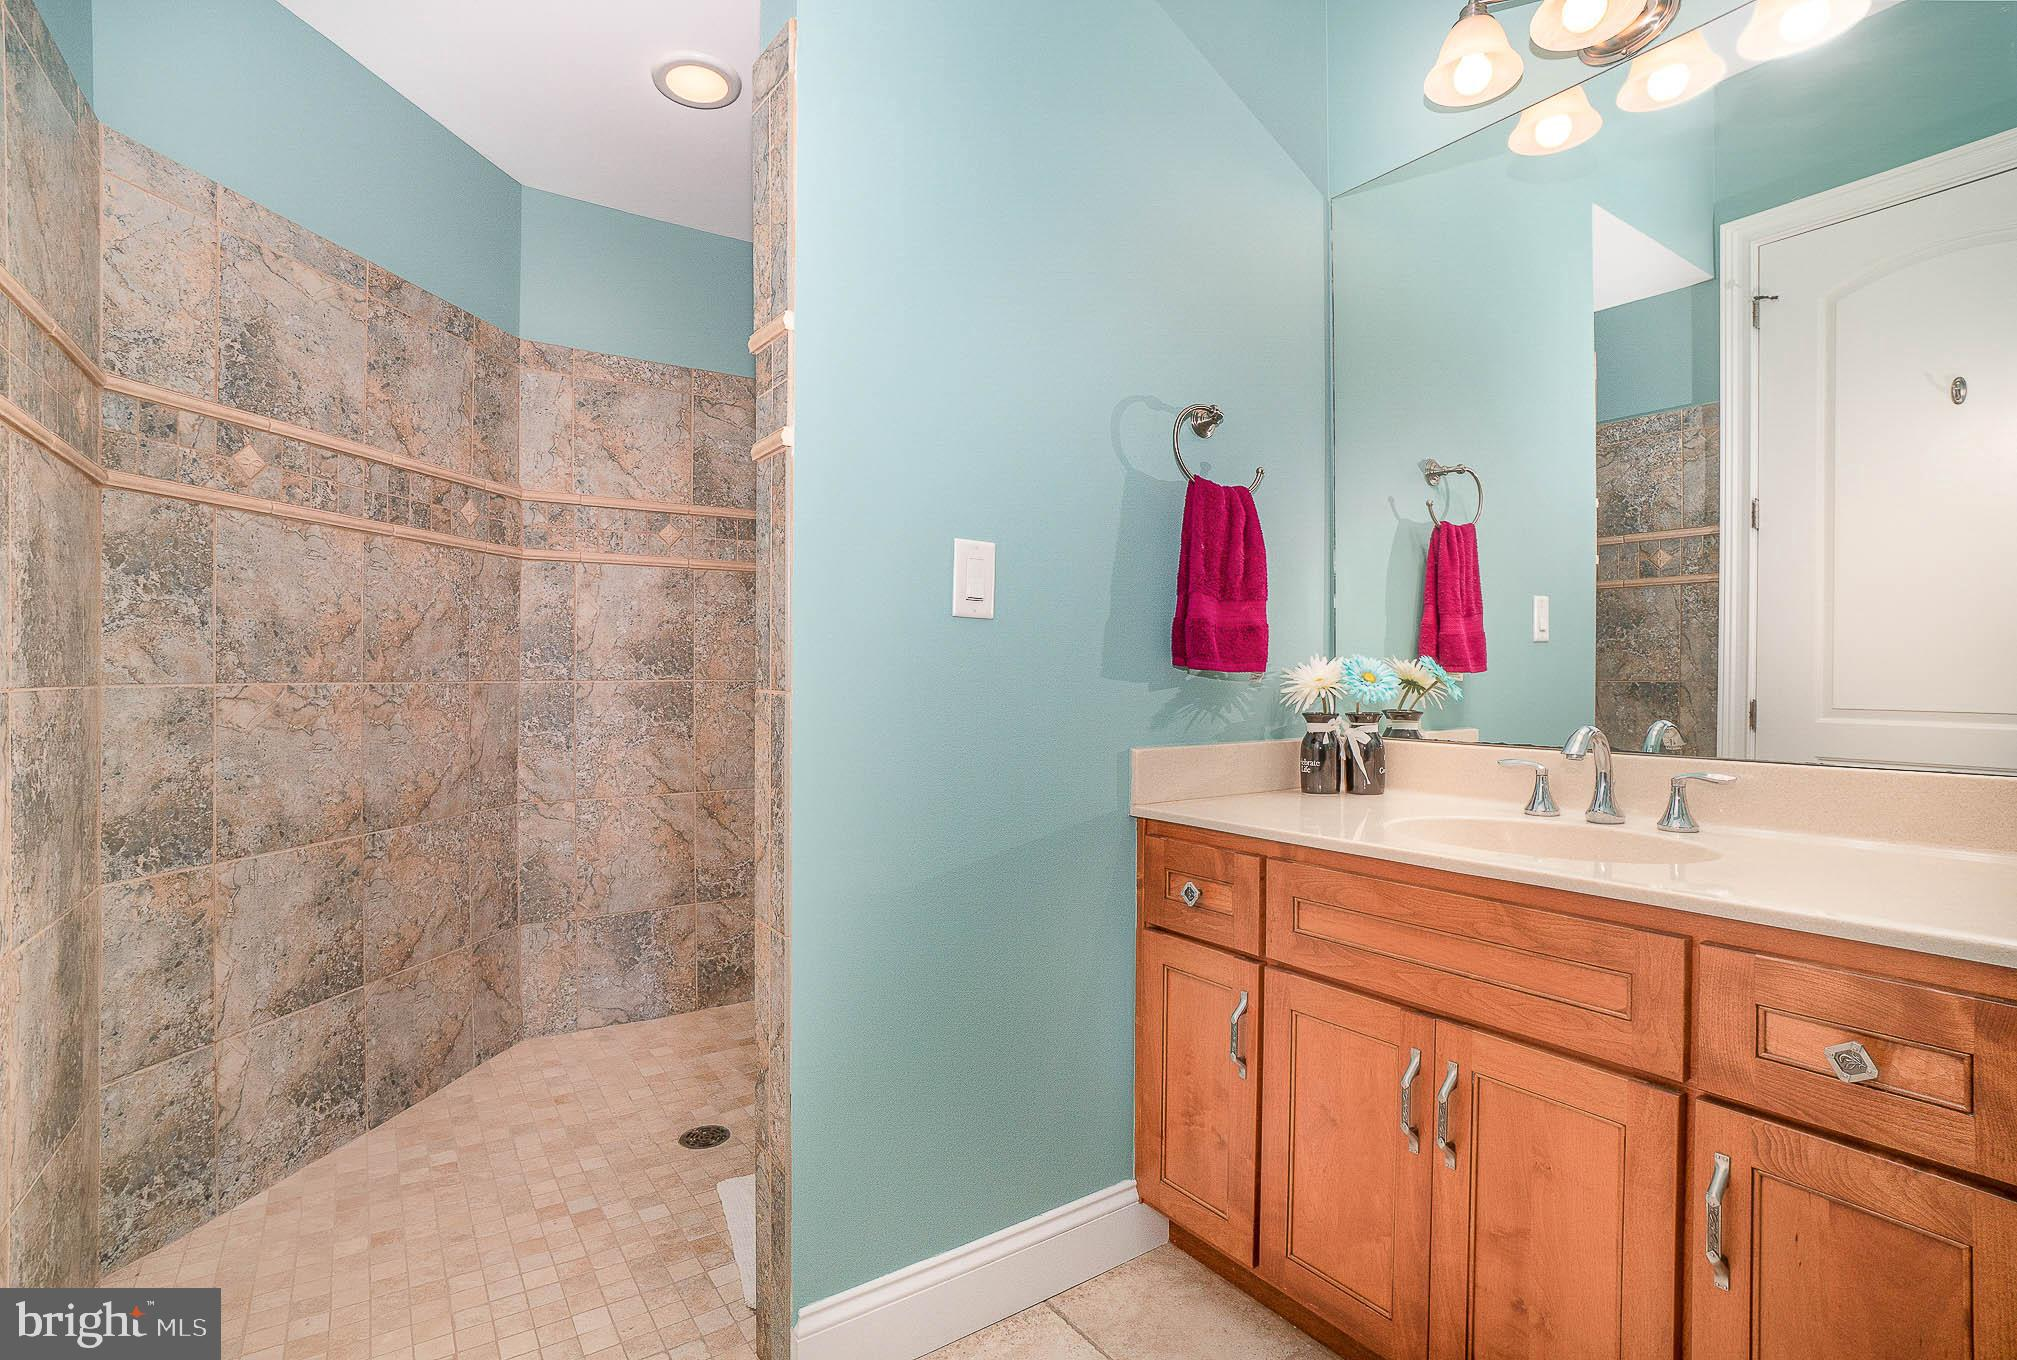 2nd BR bath with walk-in tiled shower